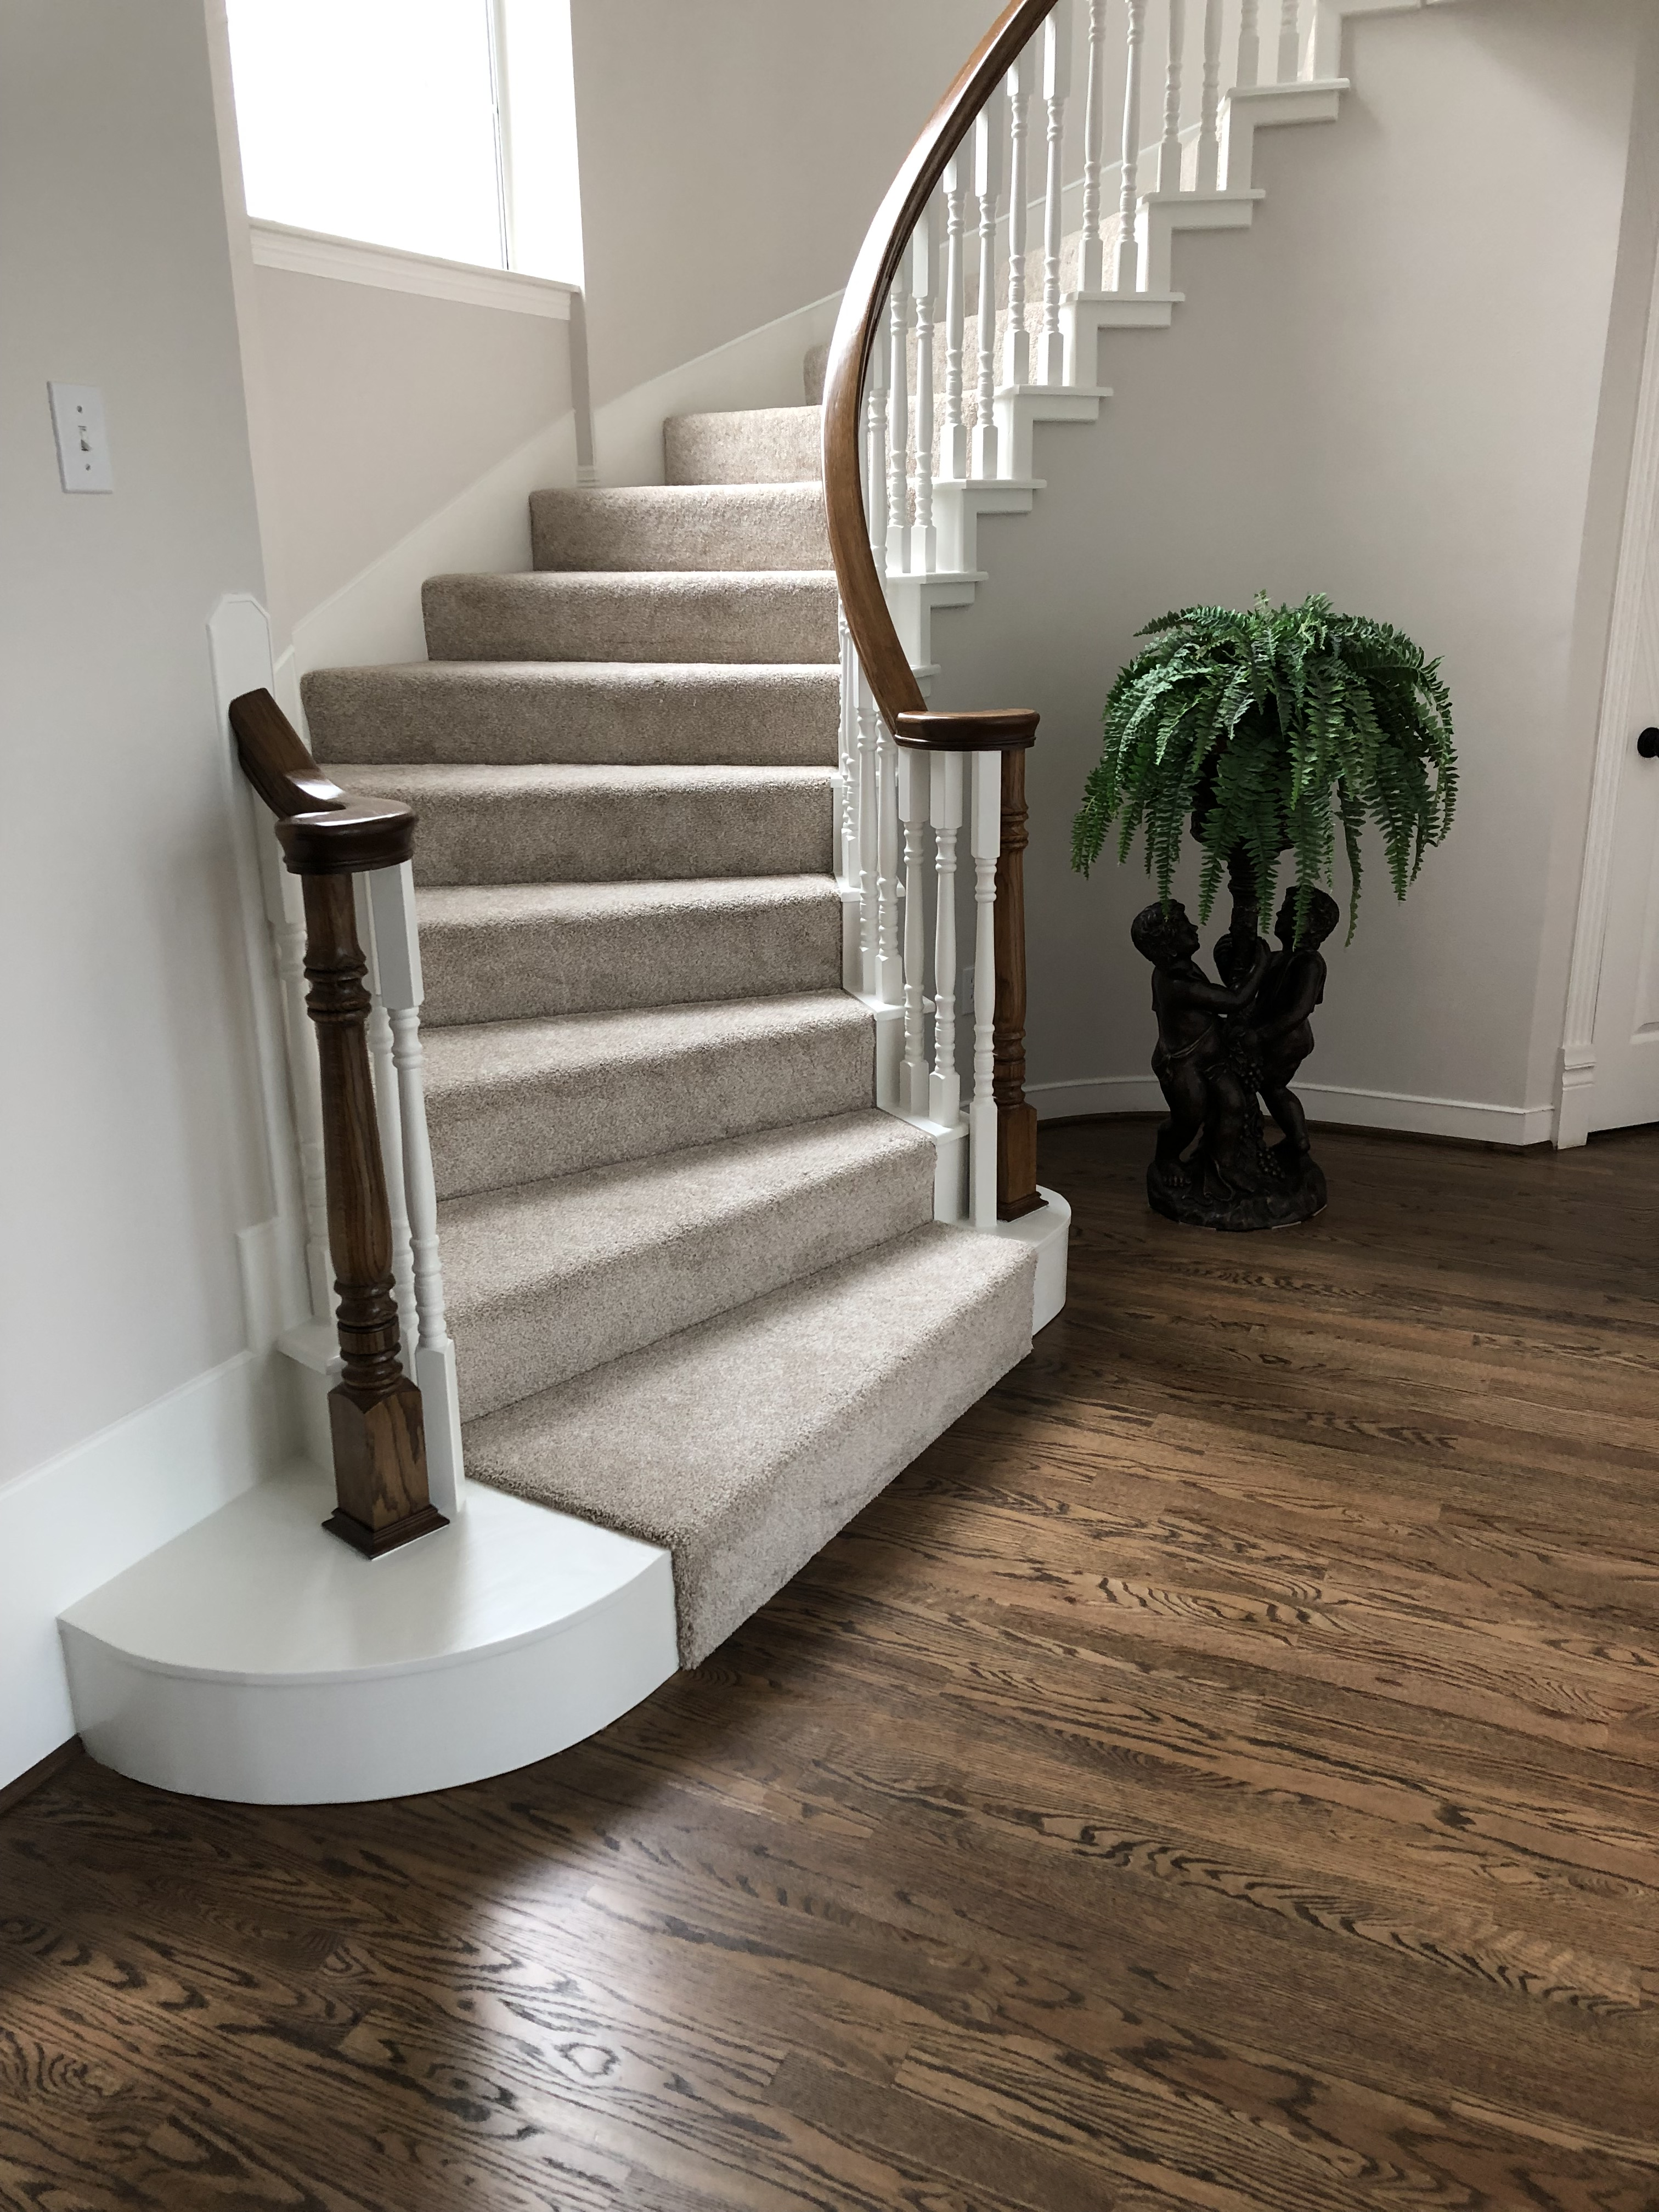 decorative wood railing sytem for indoor stairsfloor.htm viking carpet one floor   home reviews spring  tx angie s list  viking carpet one floor   home reviews